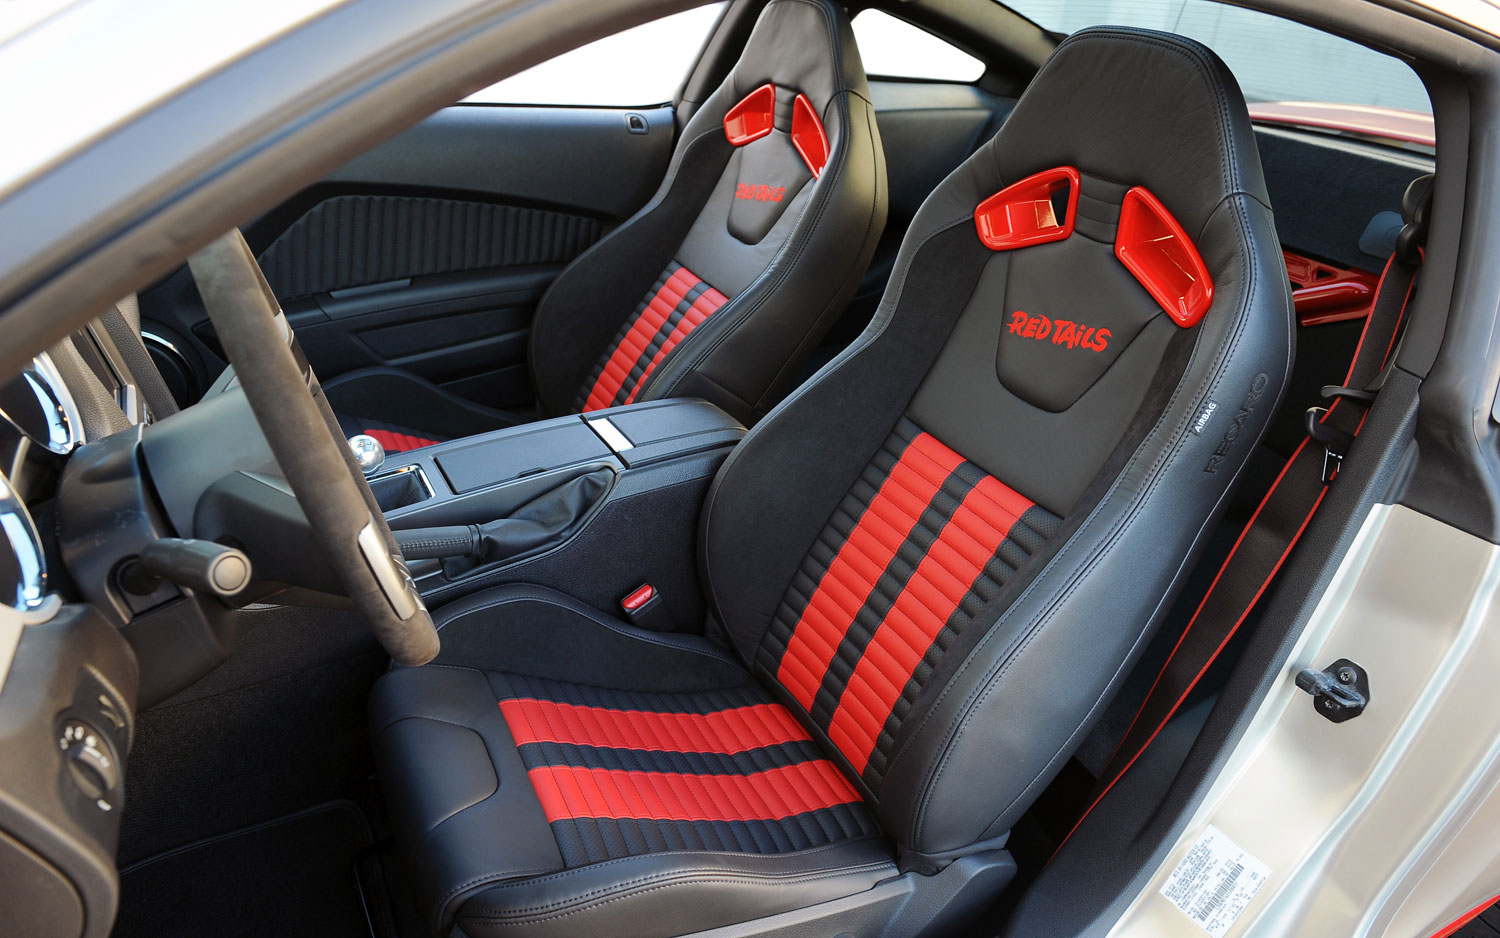 More Photos of the 2013 Ford Mustang Boss 302 Red Tails Edition